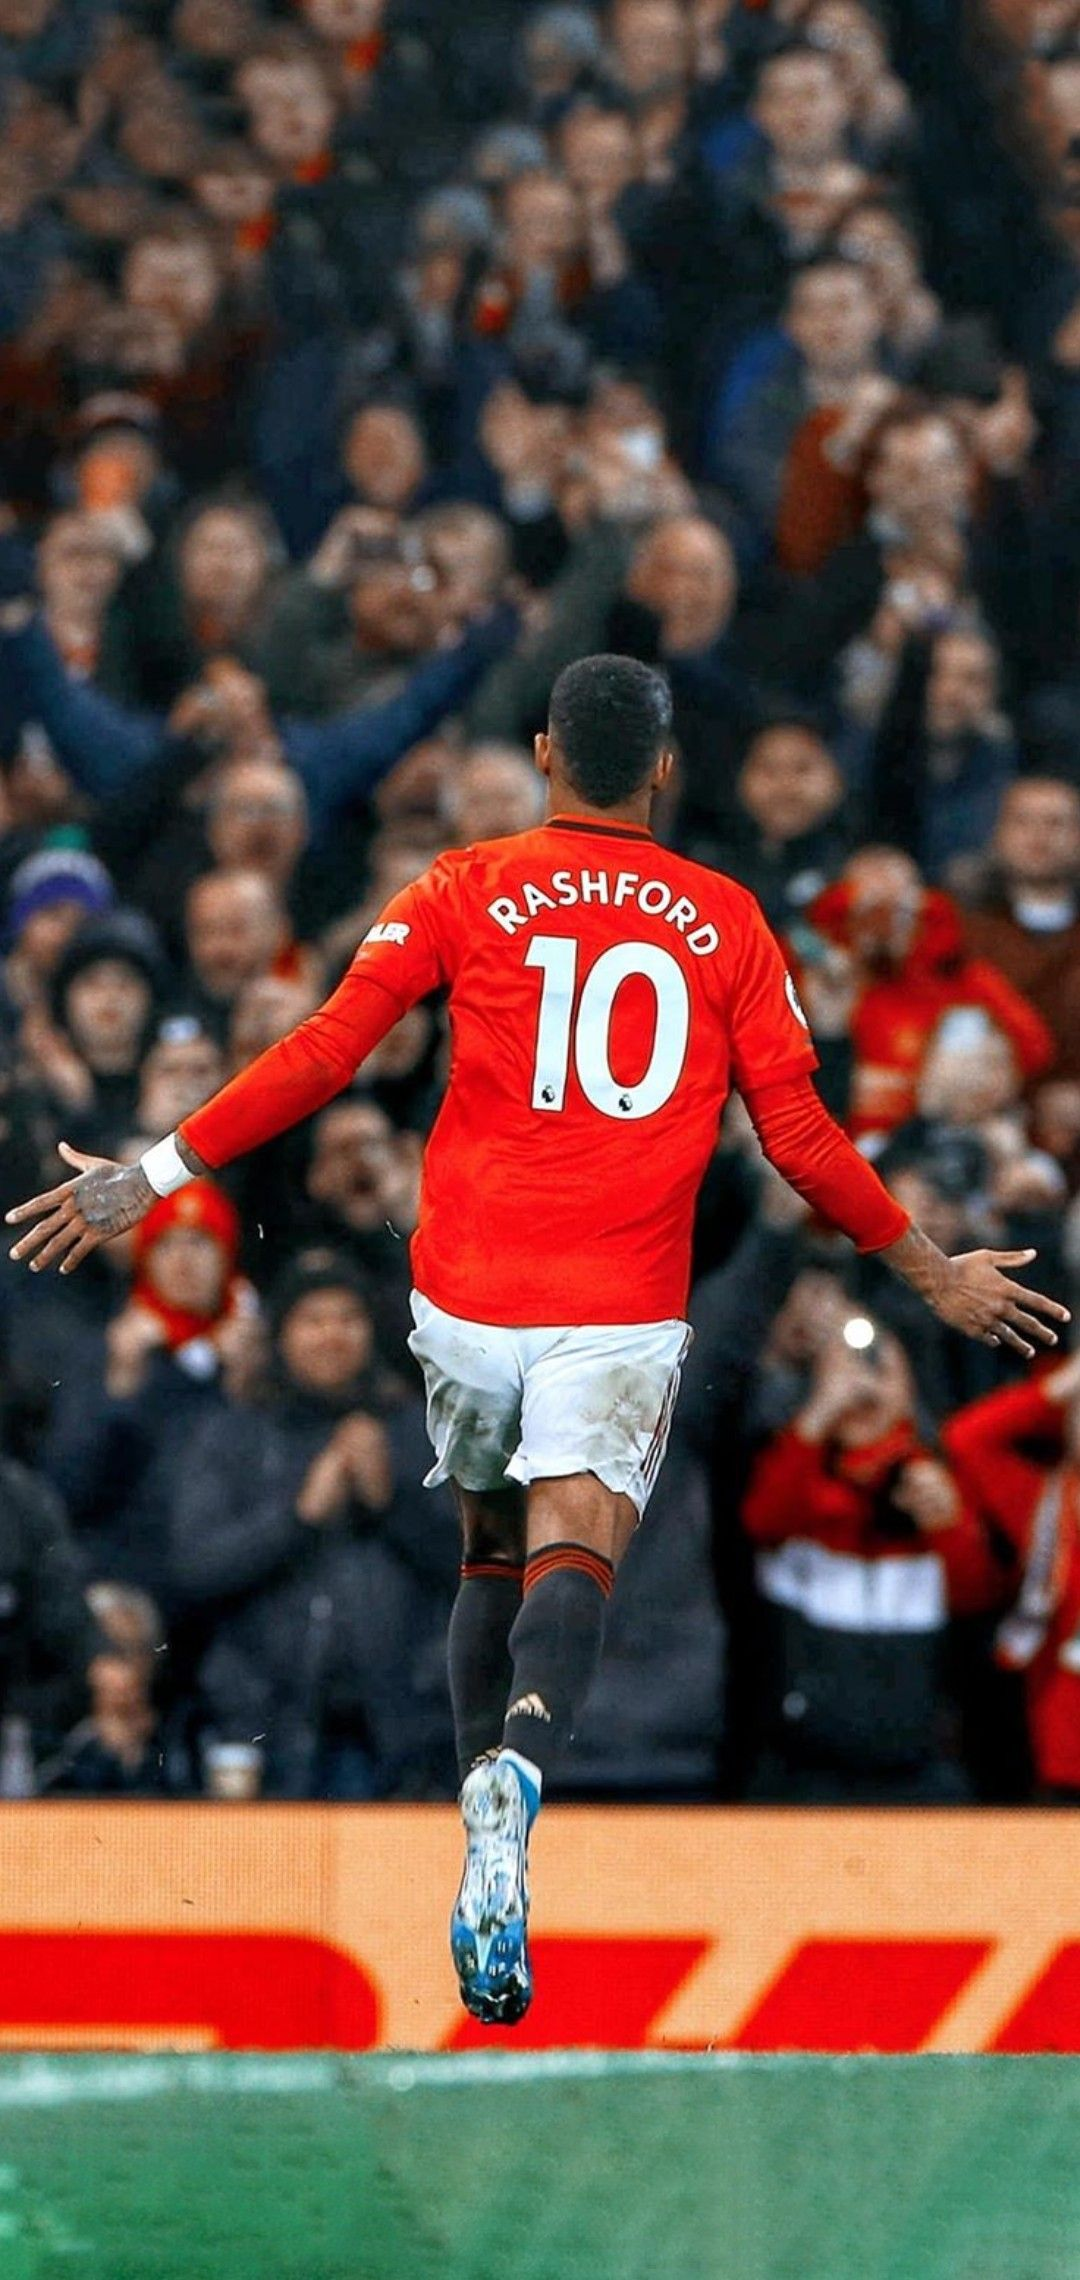 List of Great Manchester United Wallpapers Rashford